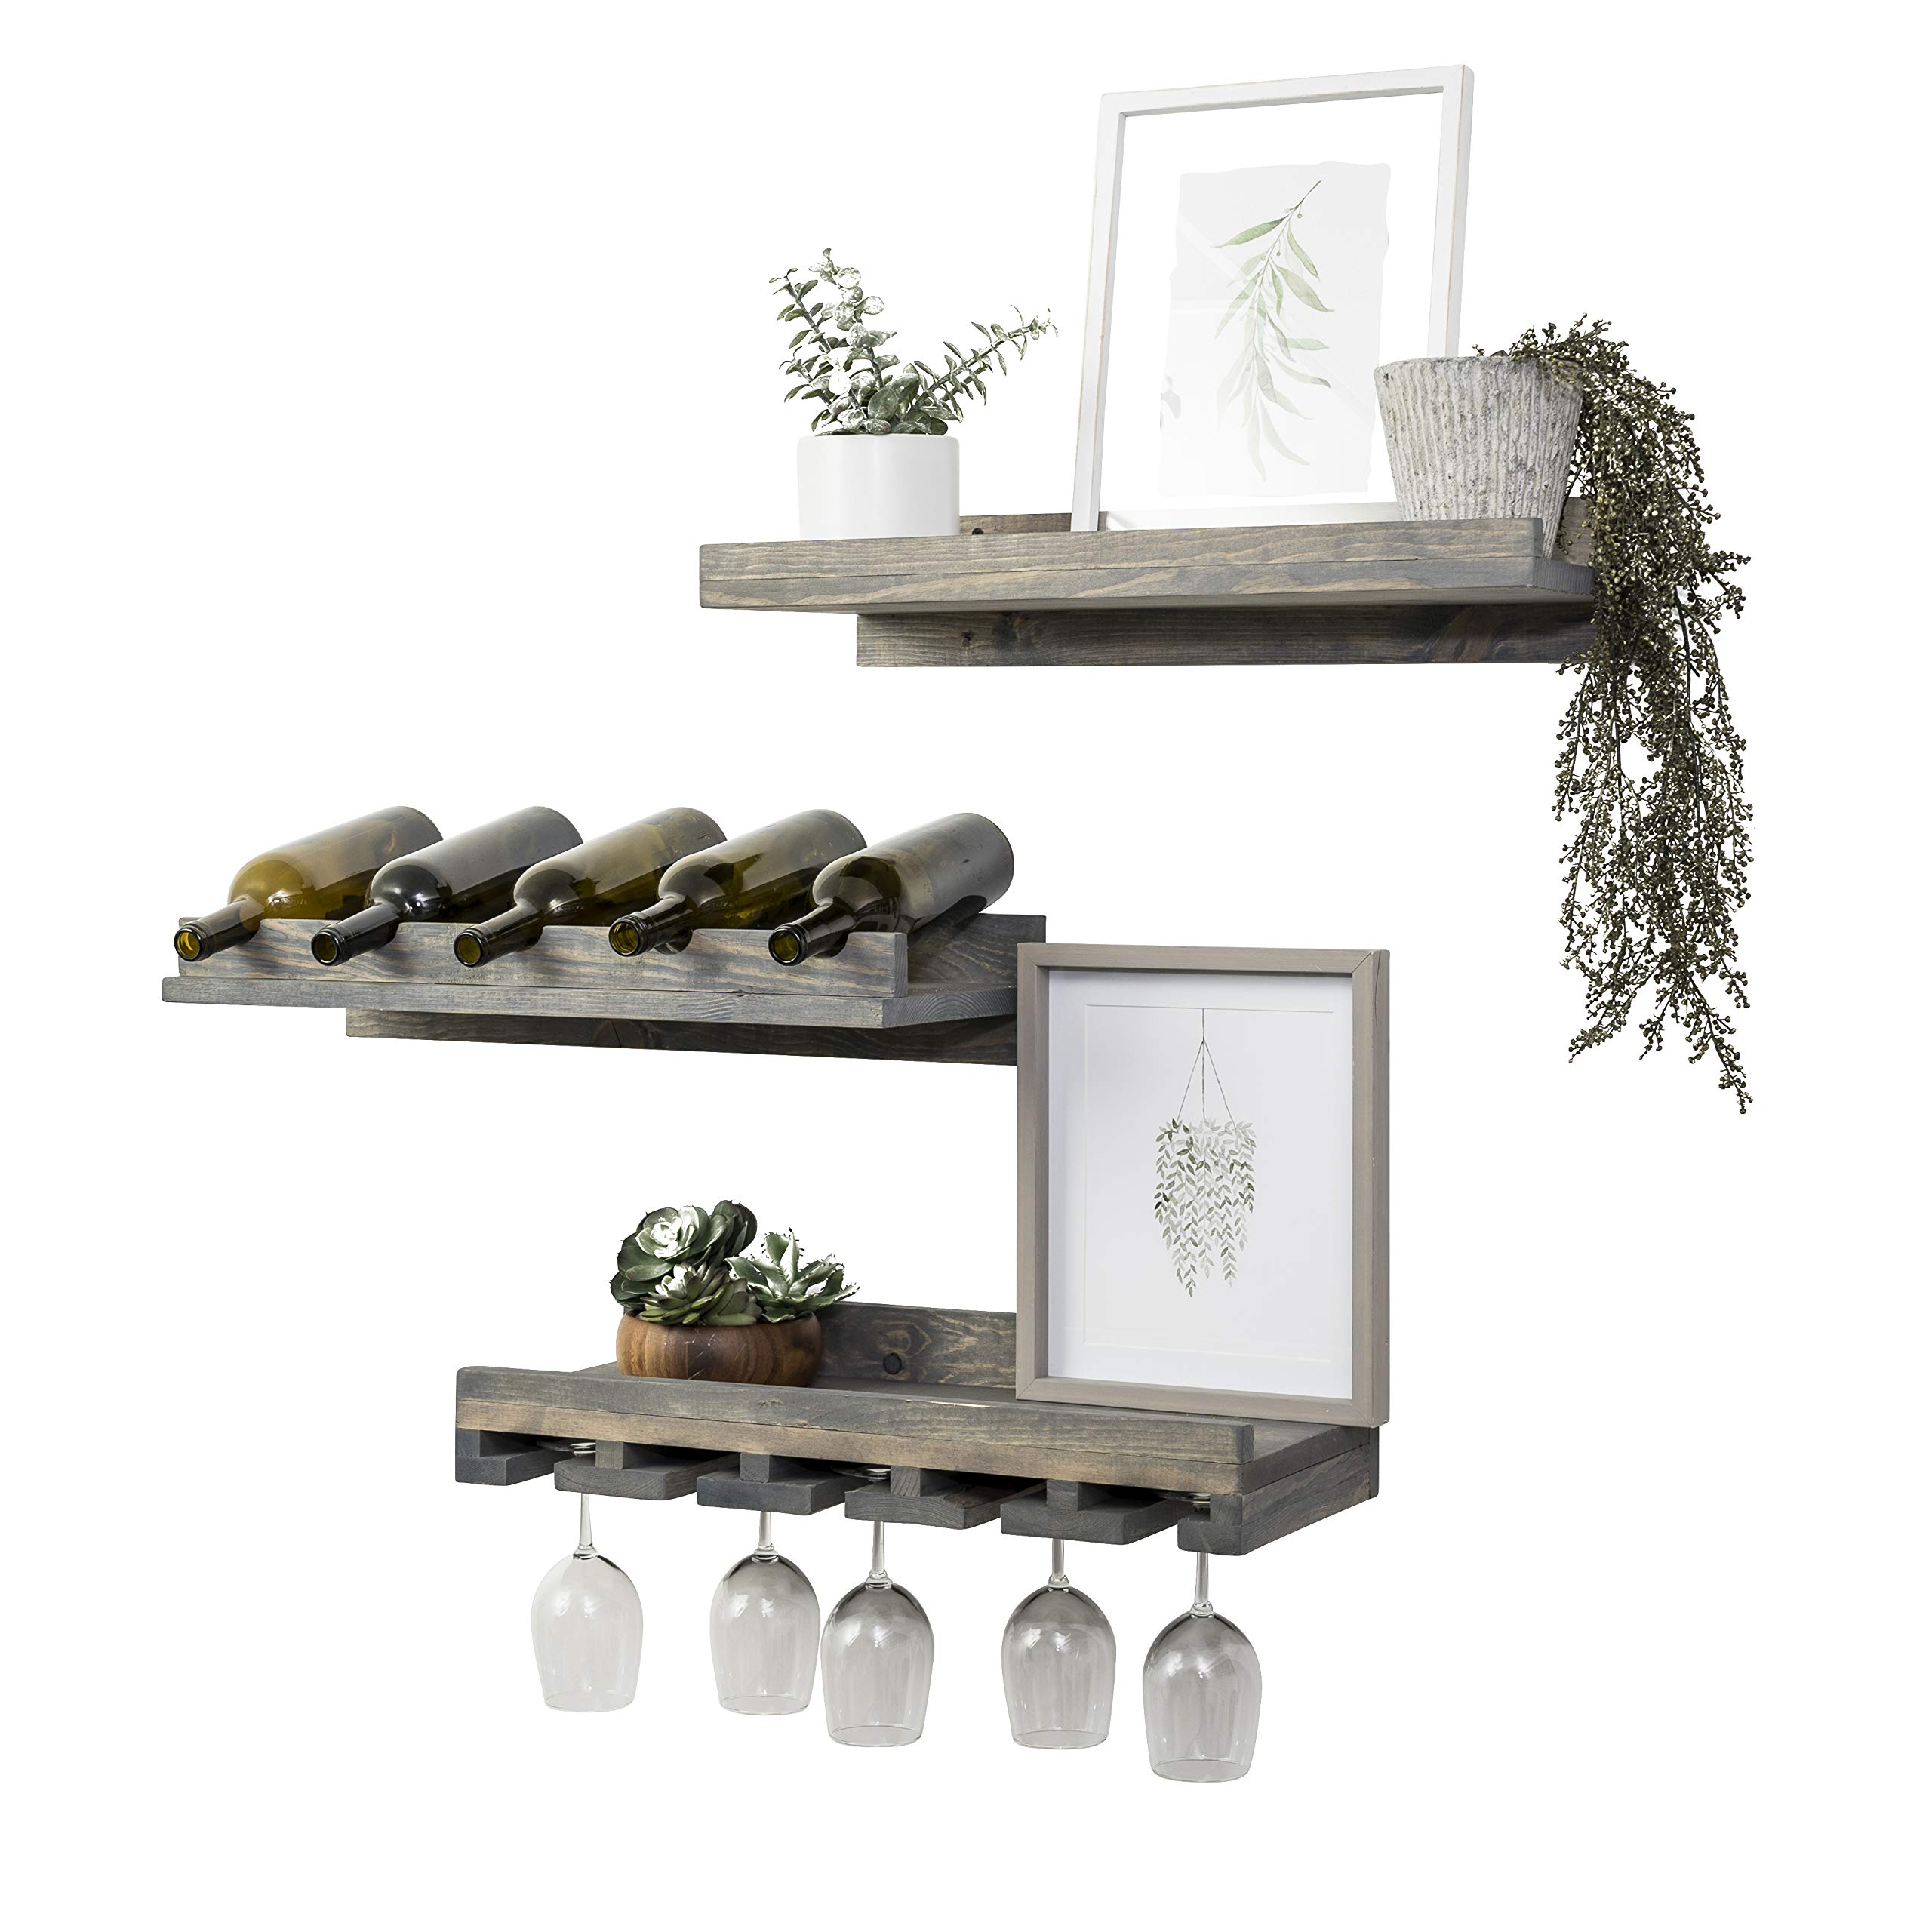 Del Hutson Designs Rustic Handmade Wooden Wall Mounted Three Tiered Wine Rack 24'' (Grey)